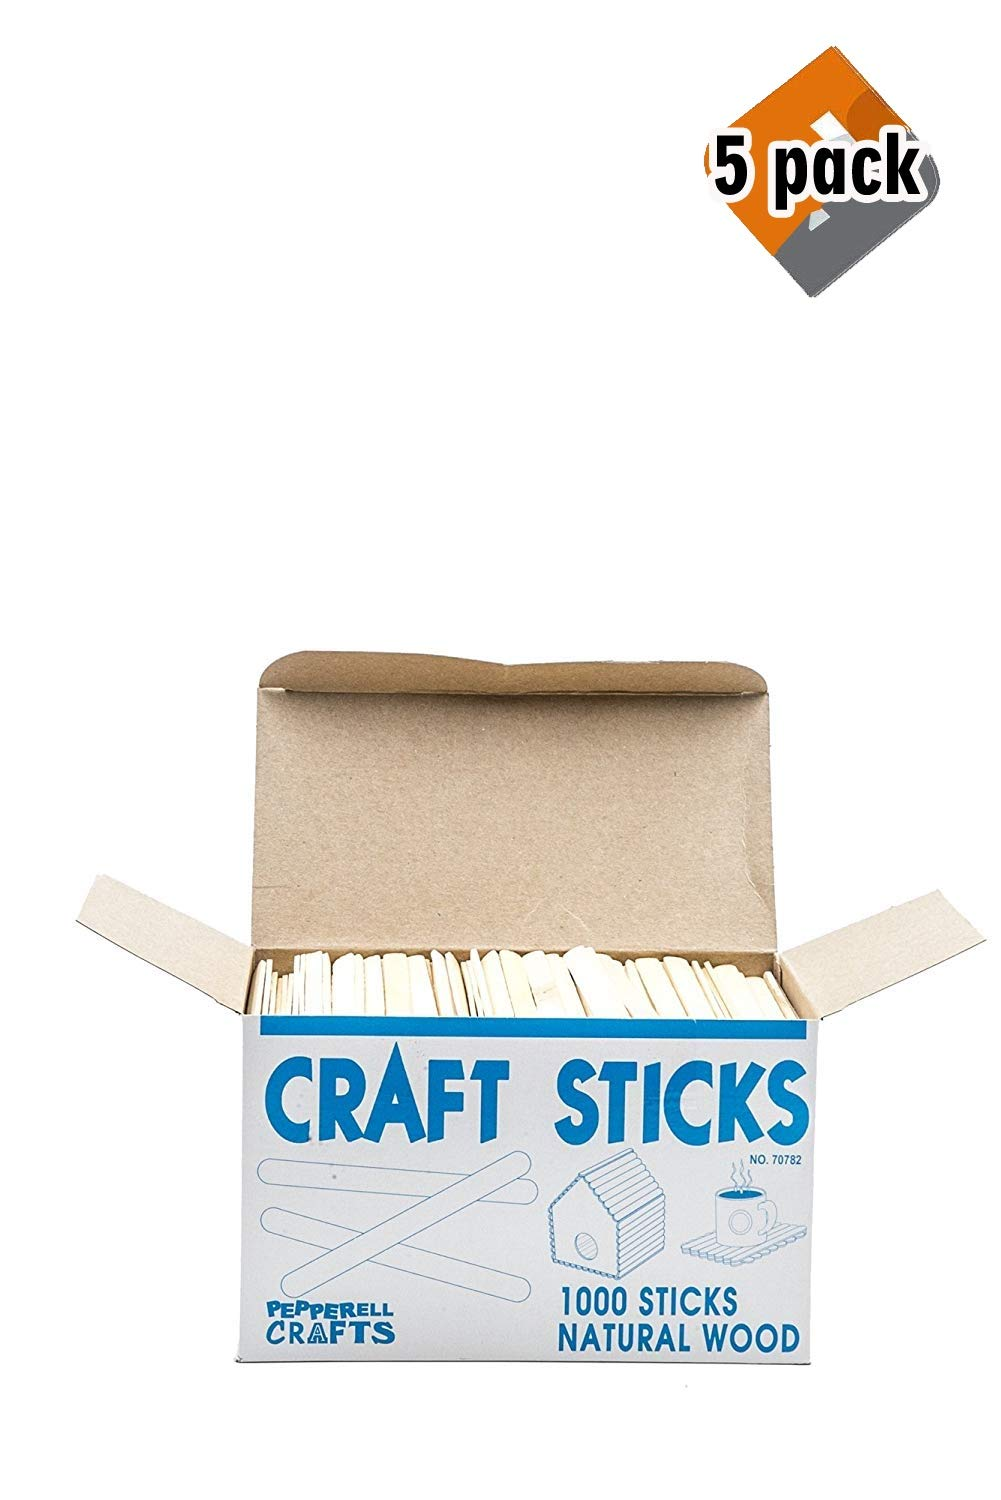 Natural Wood Craft Sticks (Pack of 1,000), 5 Pack by PEPPERELL BRAIDING COMPANY